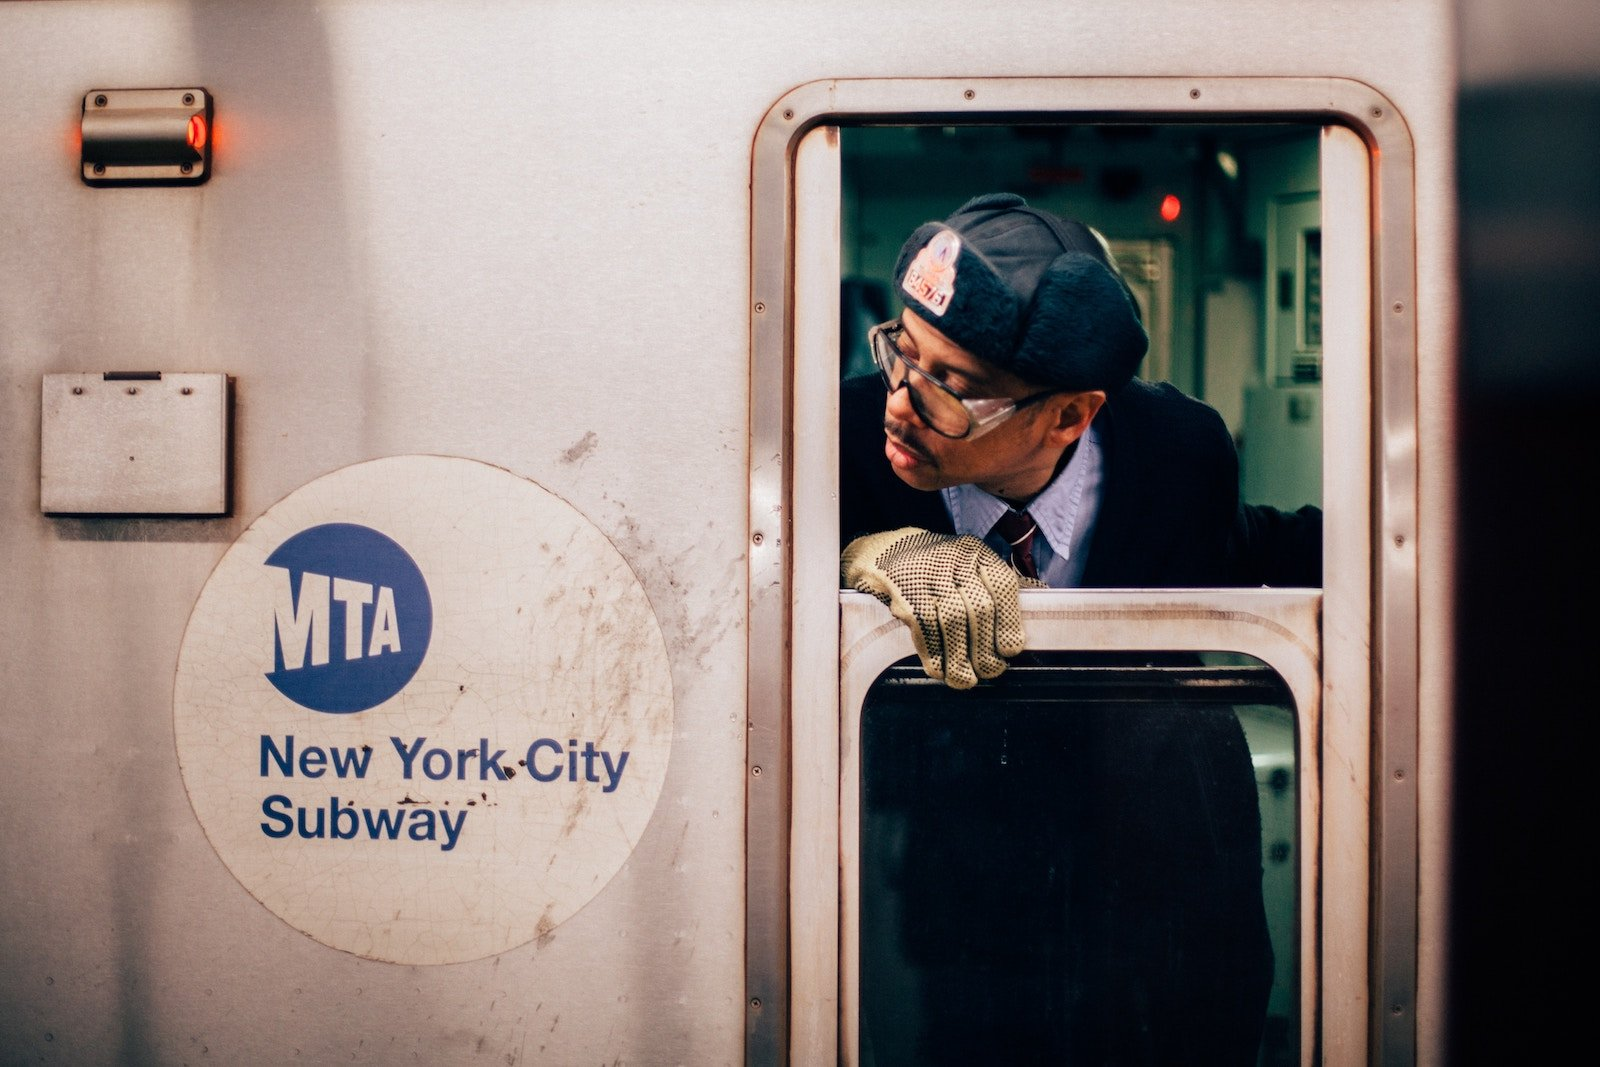 Ph. Oliver Cole. A photograph that documents life under New York City. We spent hours at this station capturing Subway workers who help to keep the city running.